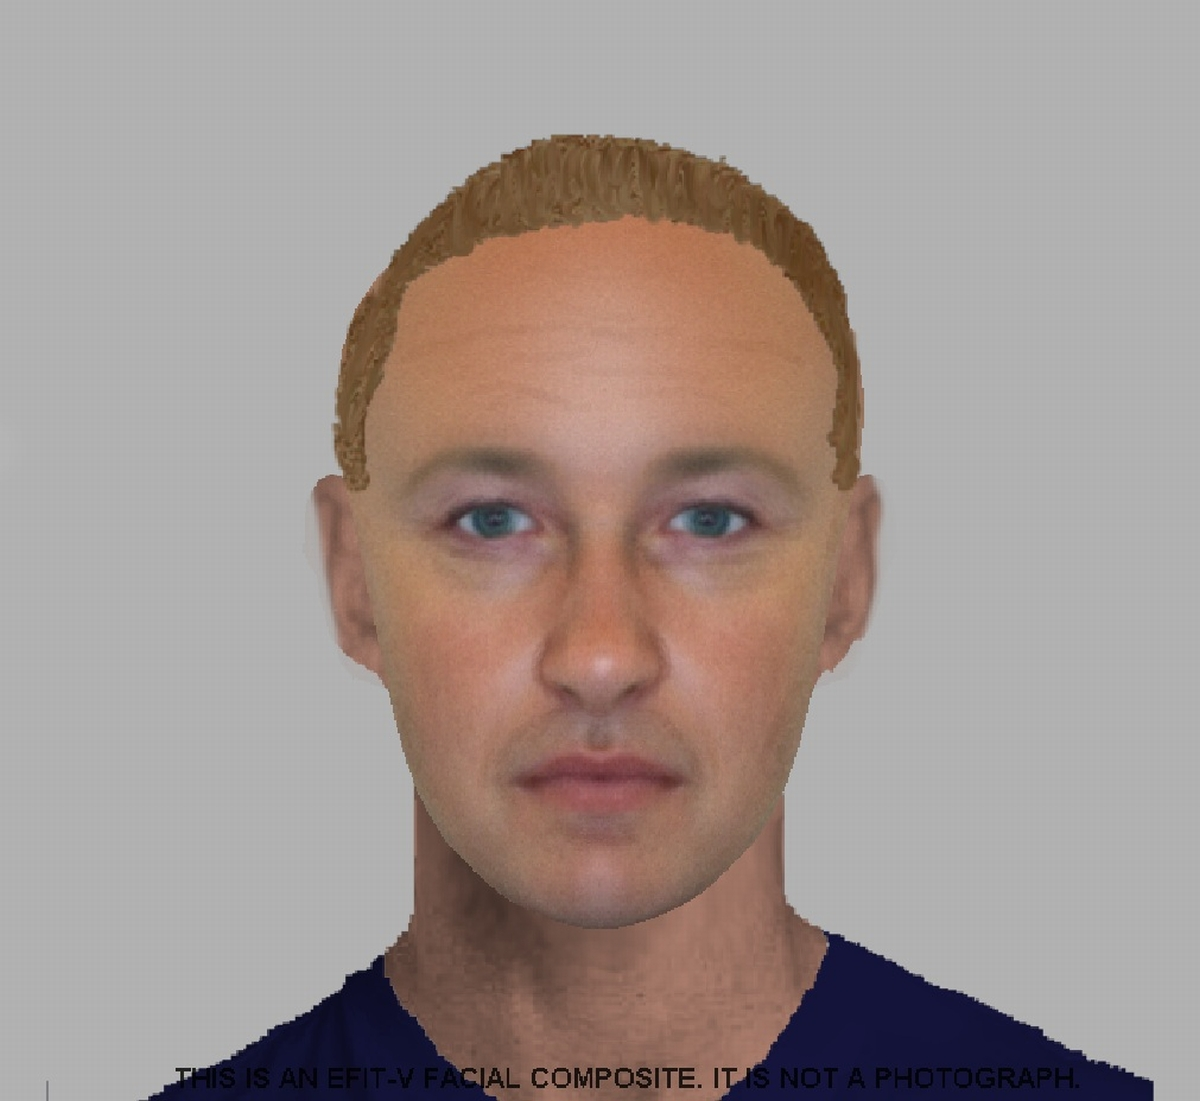 An e-fit image of the suspect.